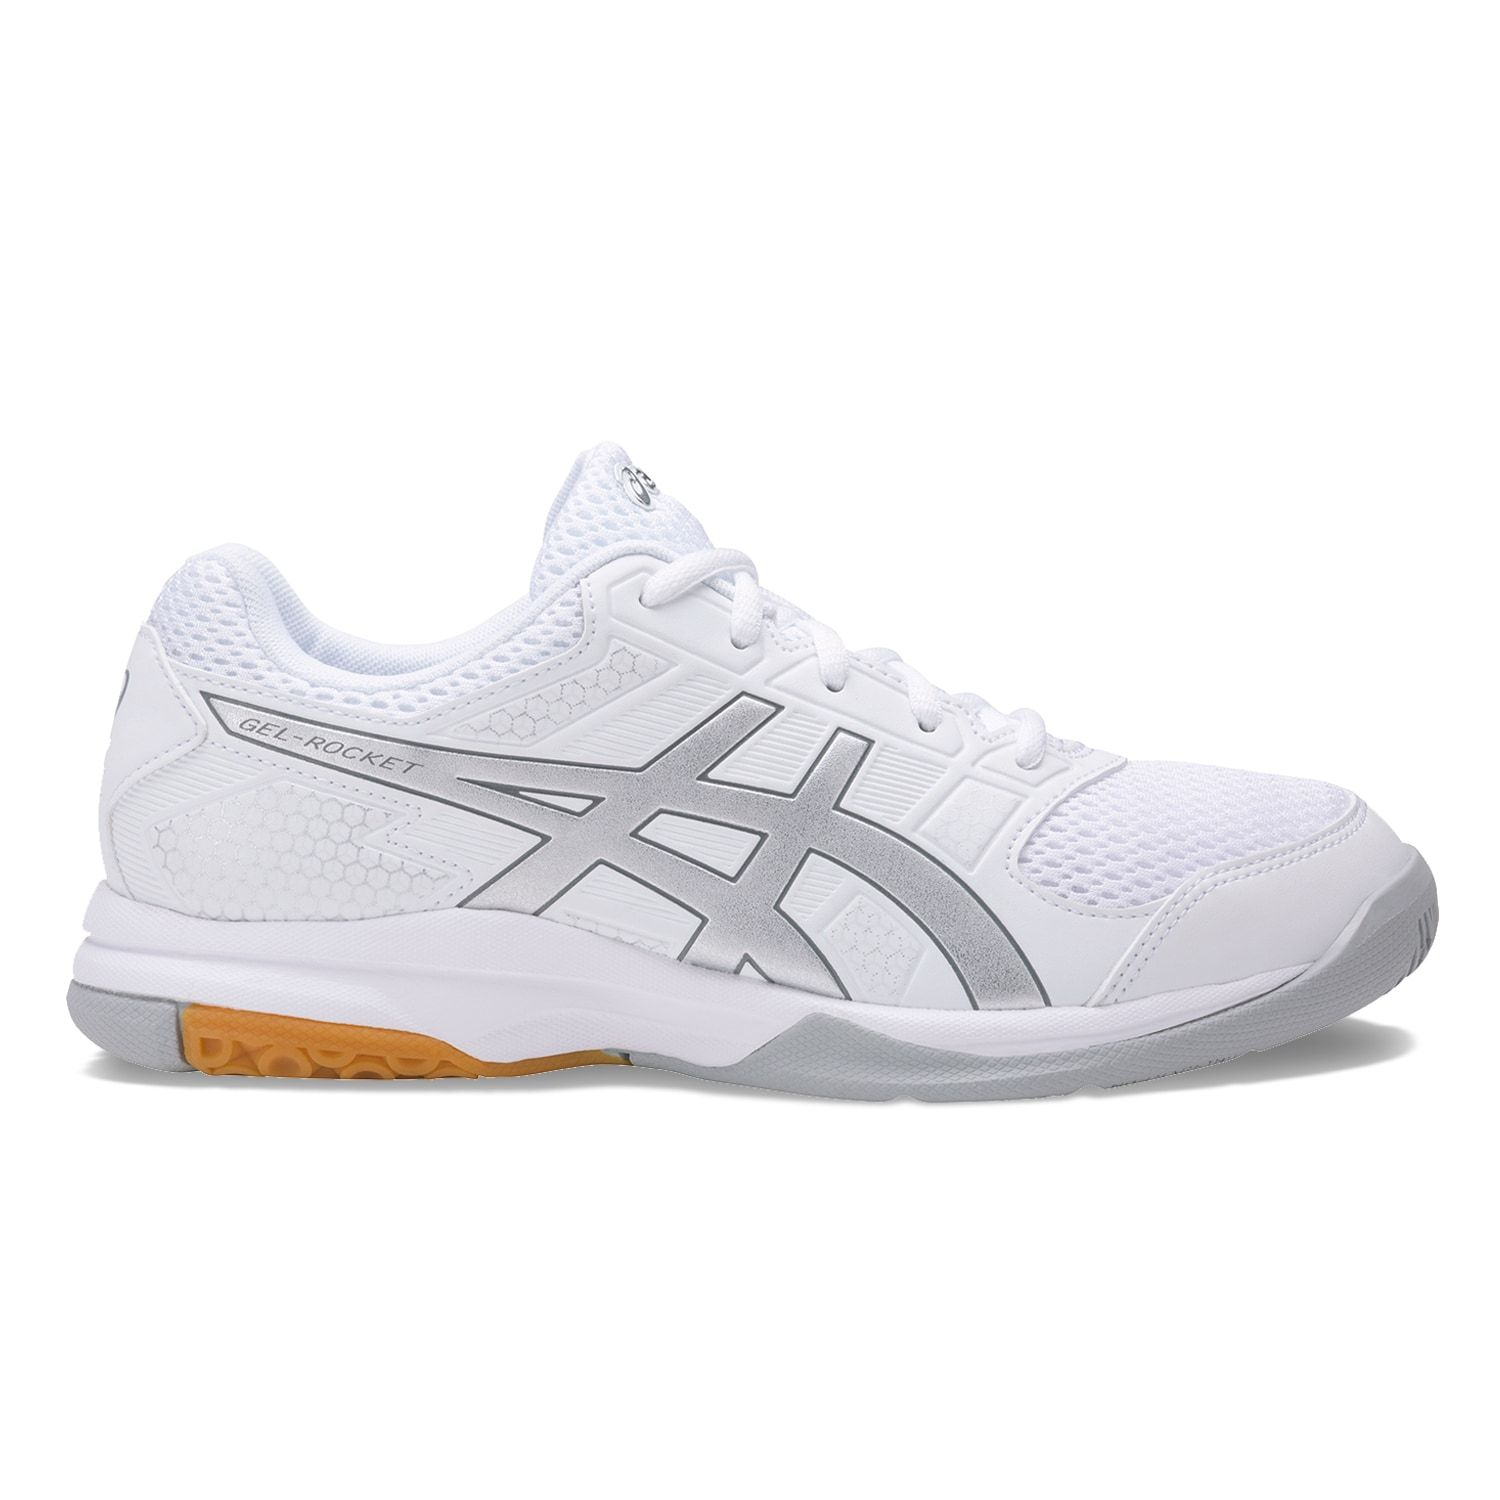 Asics Gel Rocket 8 Women S Volleyball Shoes Volleyball Shoes Asics Womens Tennis Shoes